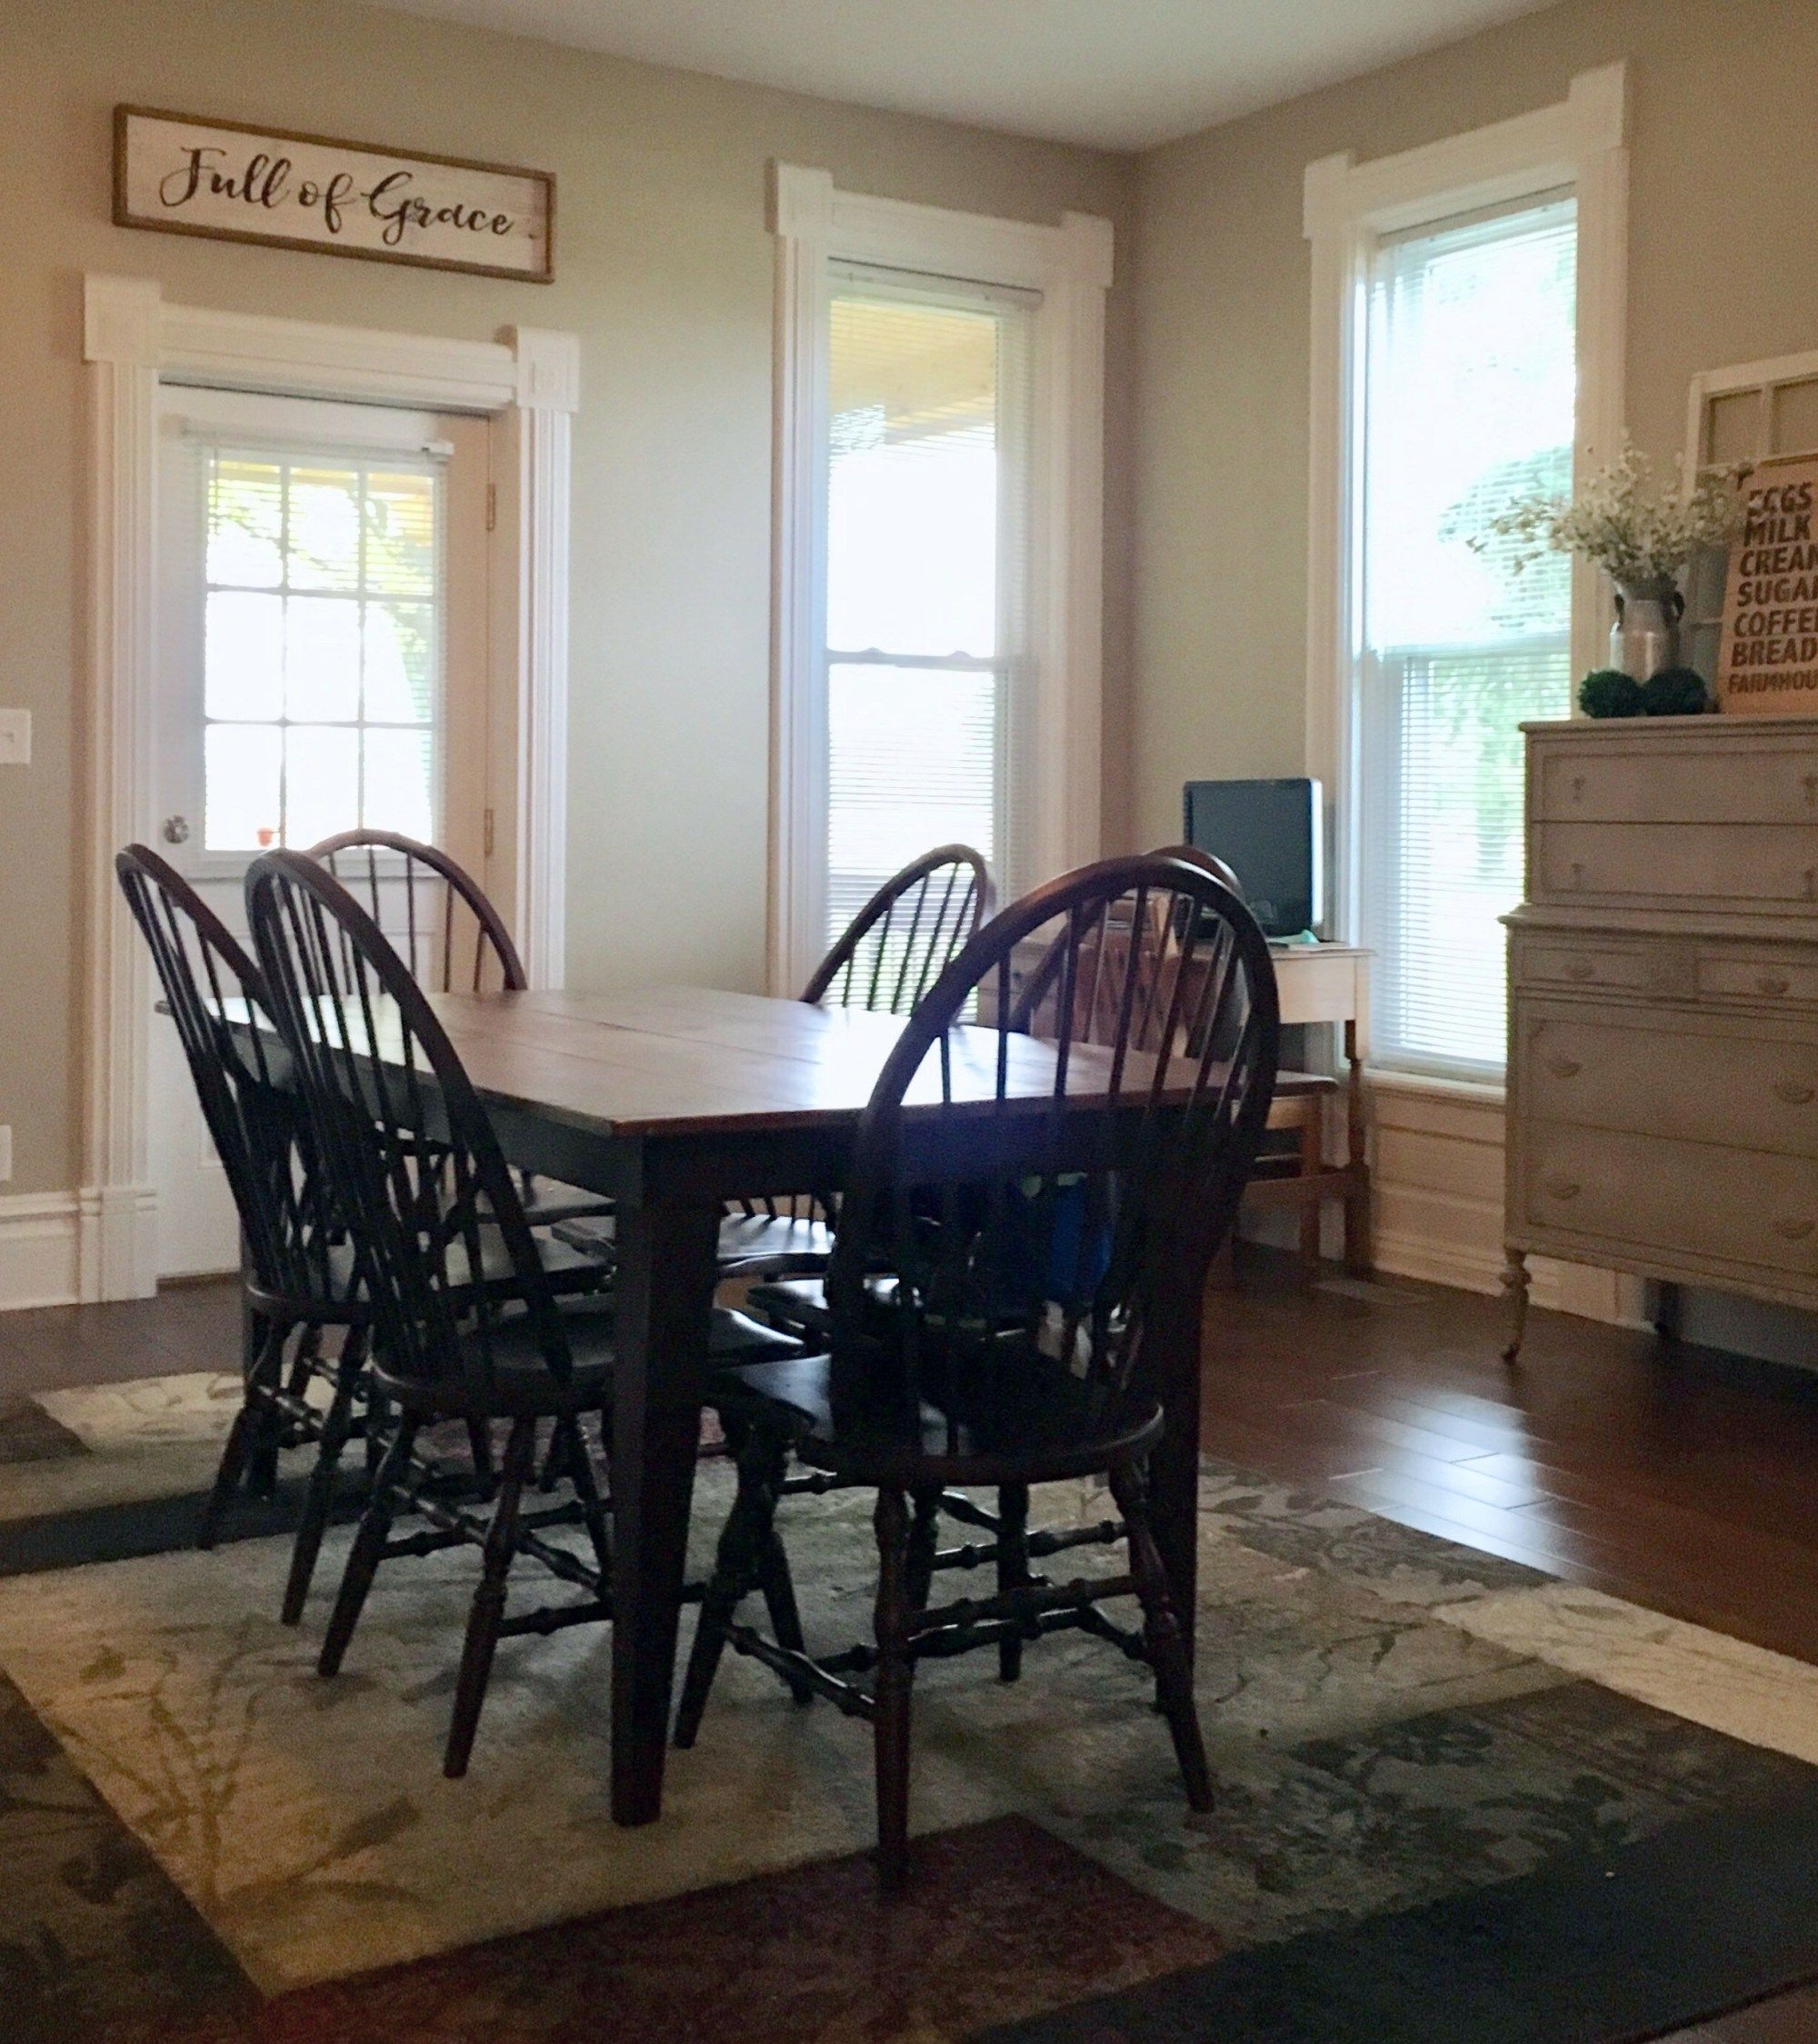 20 Small Dining Room Ideas On A Budget: How To Update Your Dining Room Table On A Budget